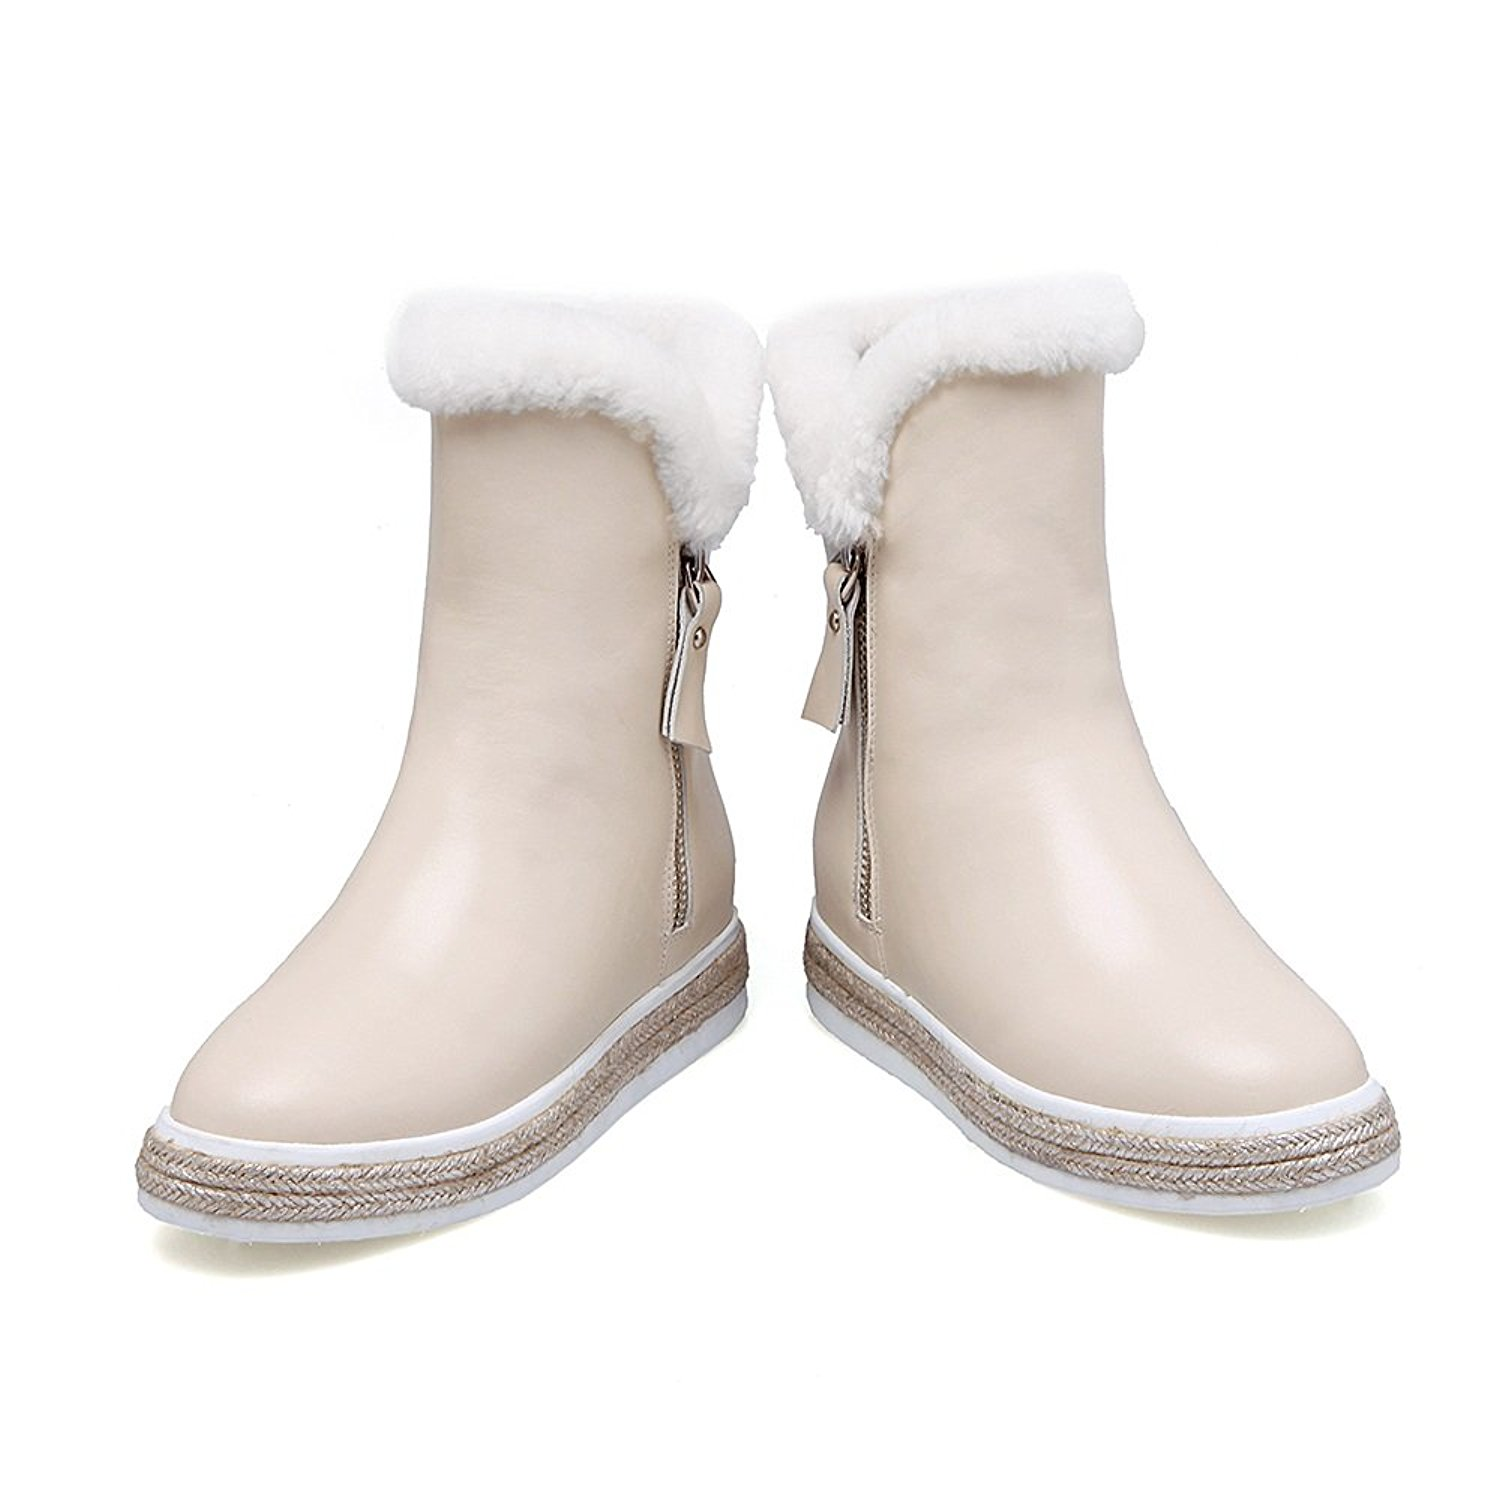 VogueZone009 Womens Closed Round Toe High Heels PU Rabbit Hair Short Plush Solid Boots with Platform